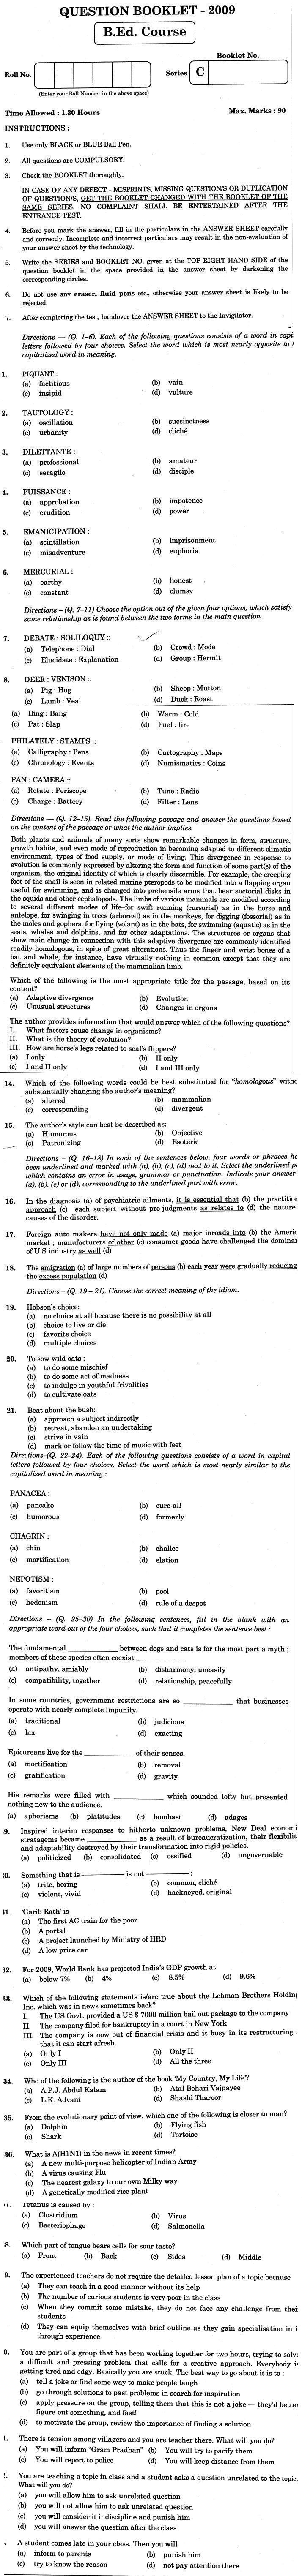 J&K B.Ed. 2009 Question Paper